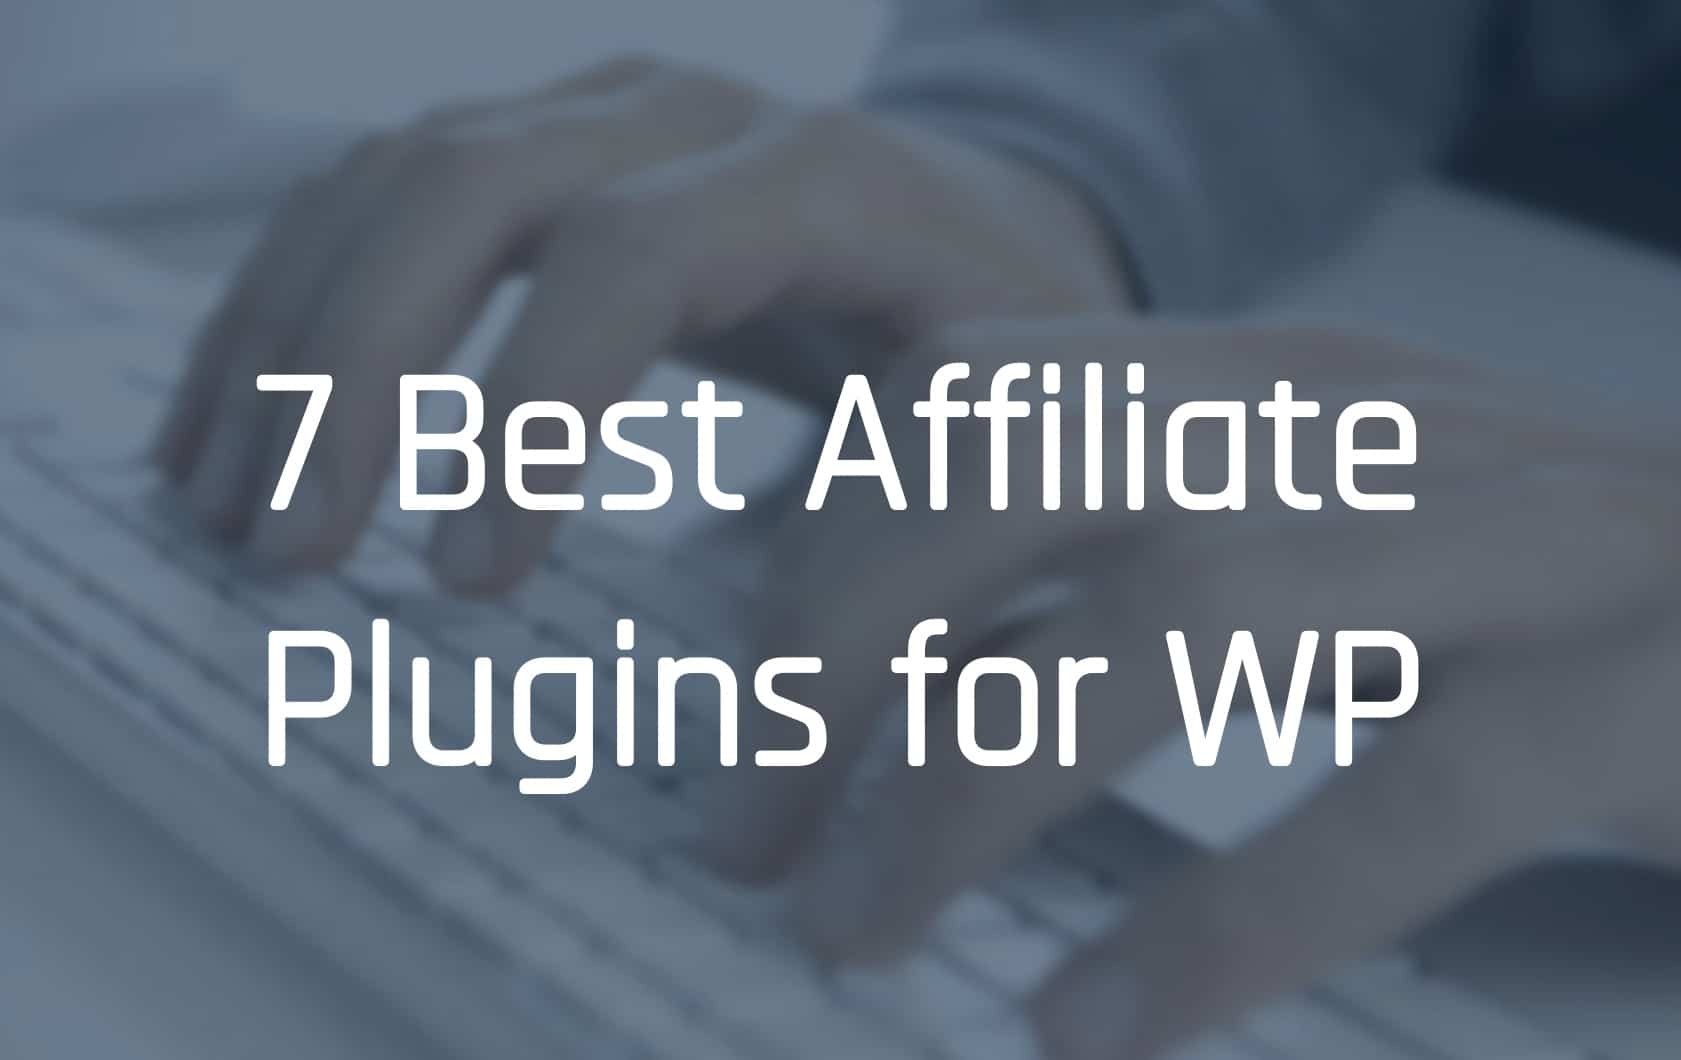 Best Affiliate Plugins for WordPress